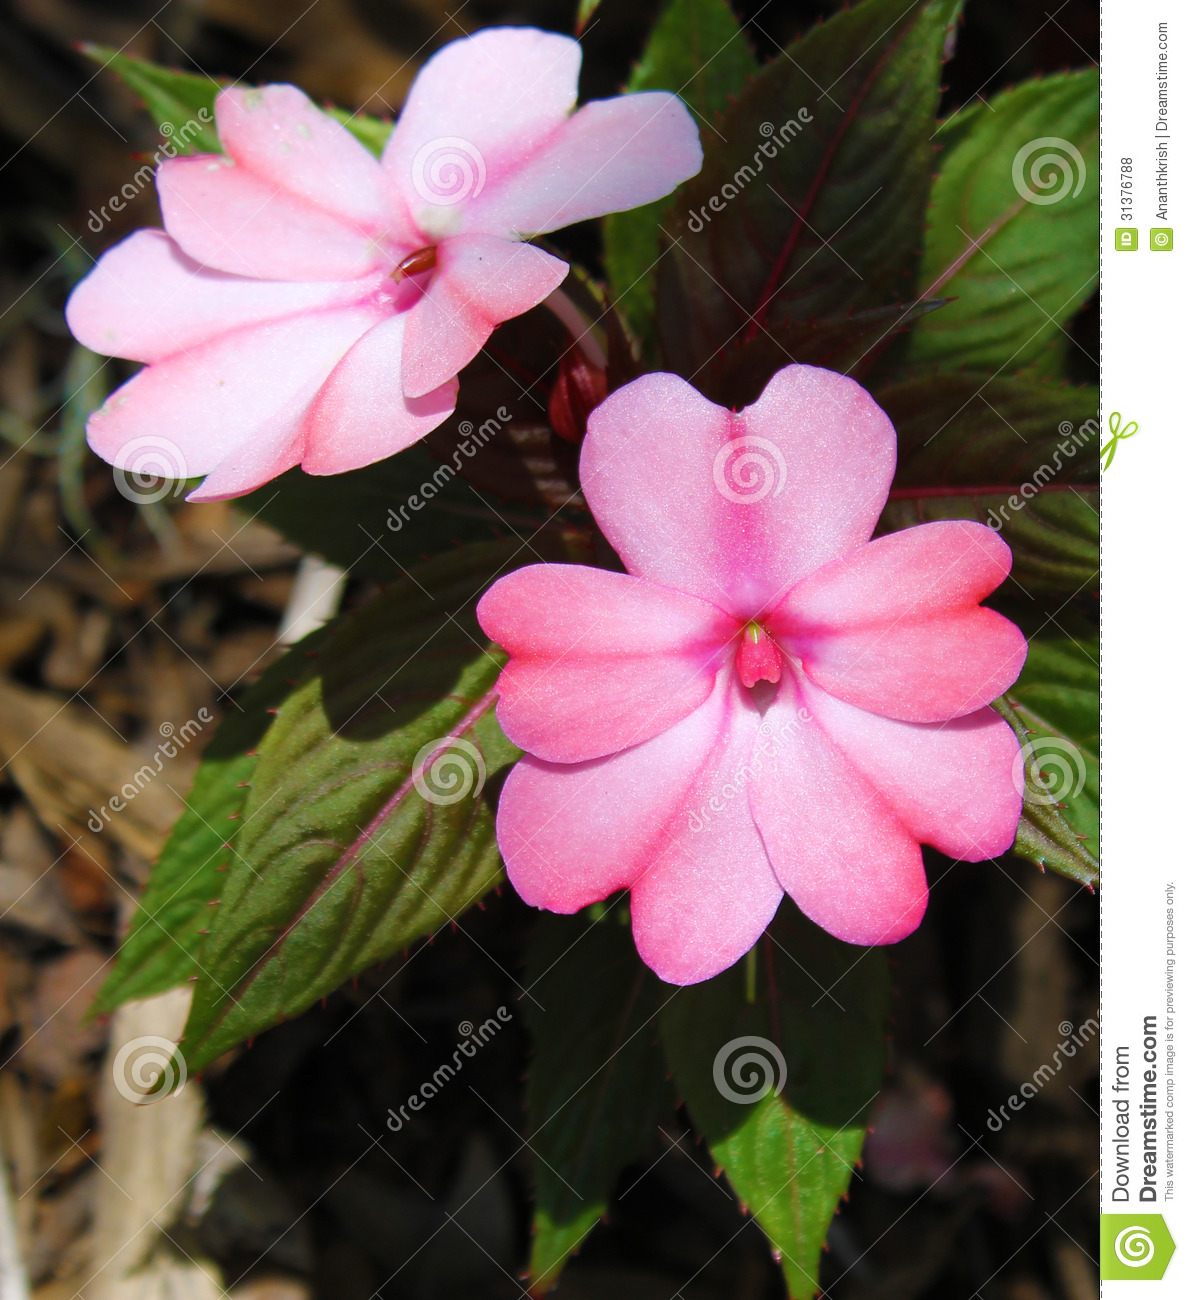 Guinea Impatiens Flowers Royalty Free Stock s Image